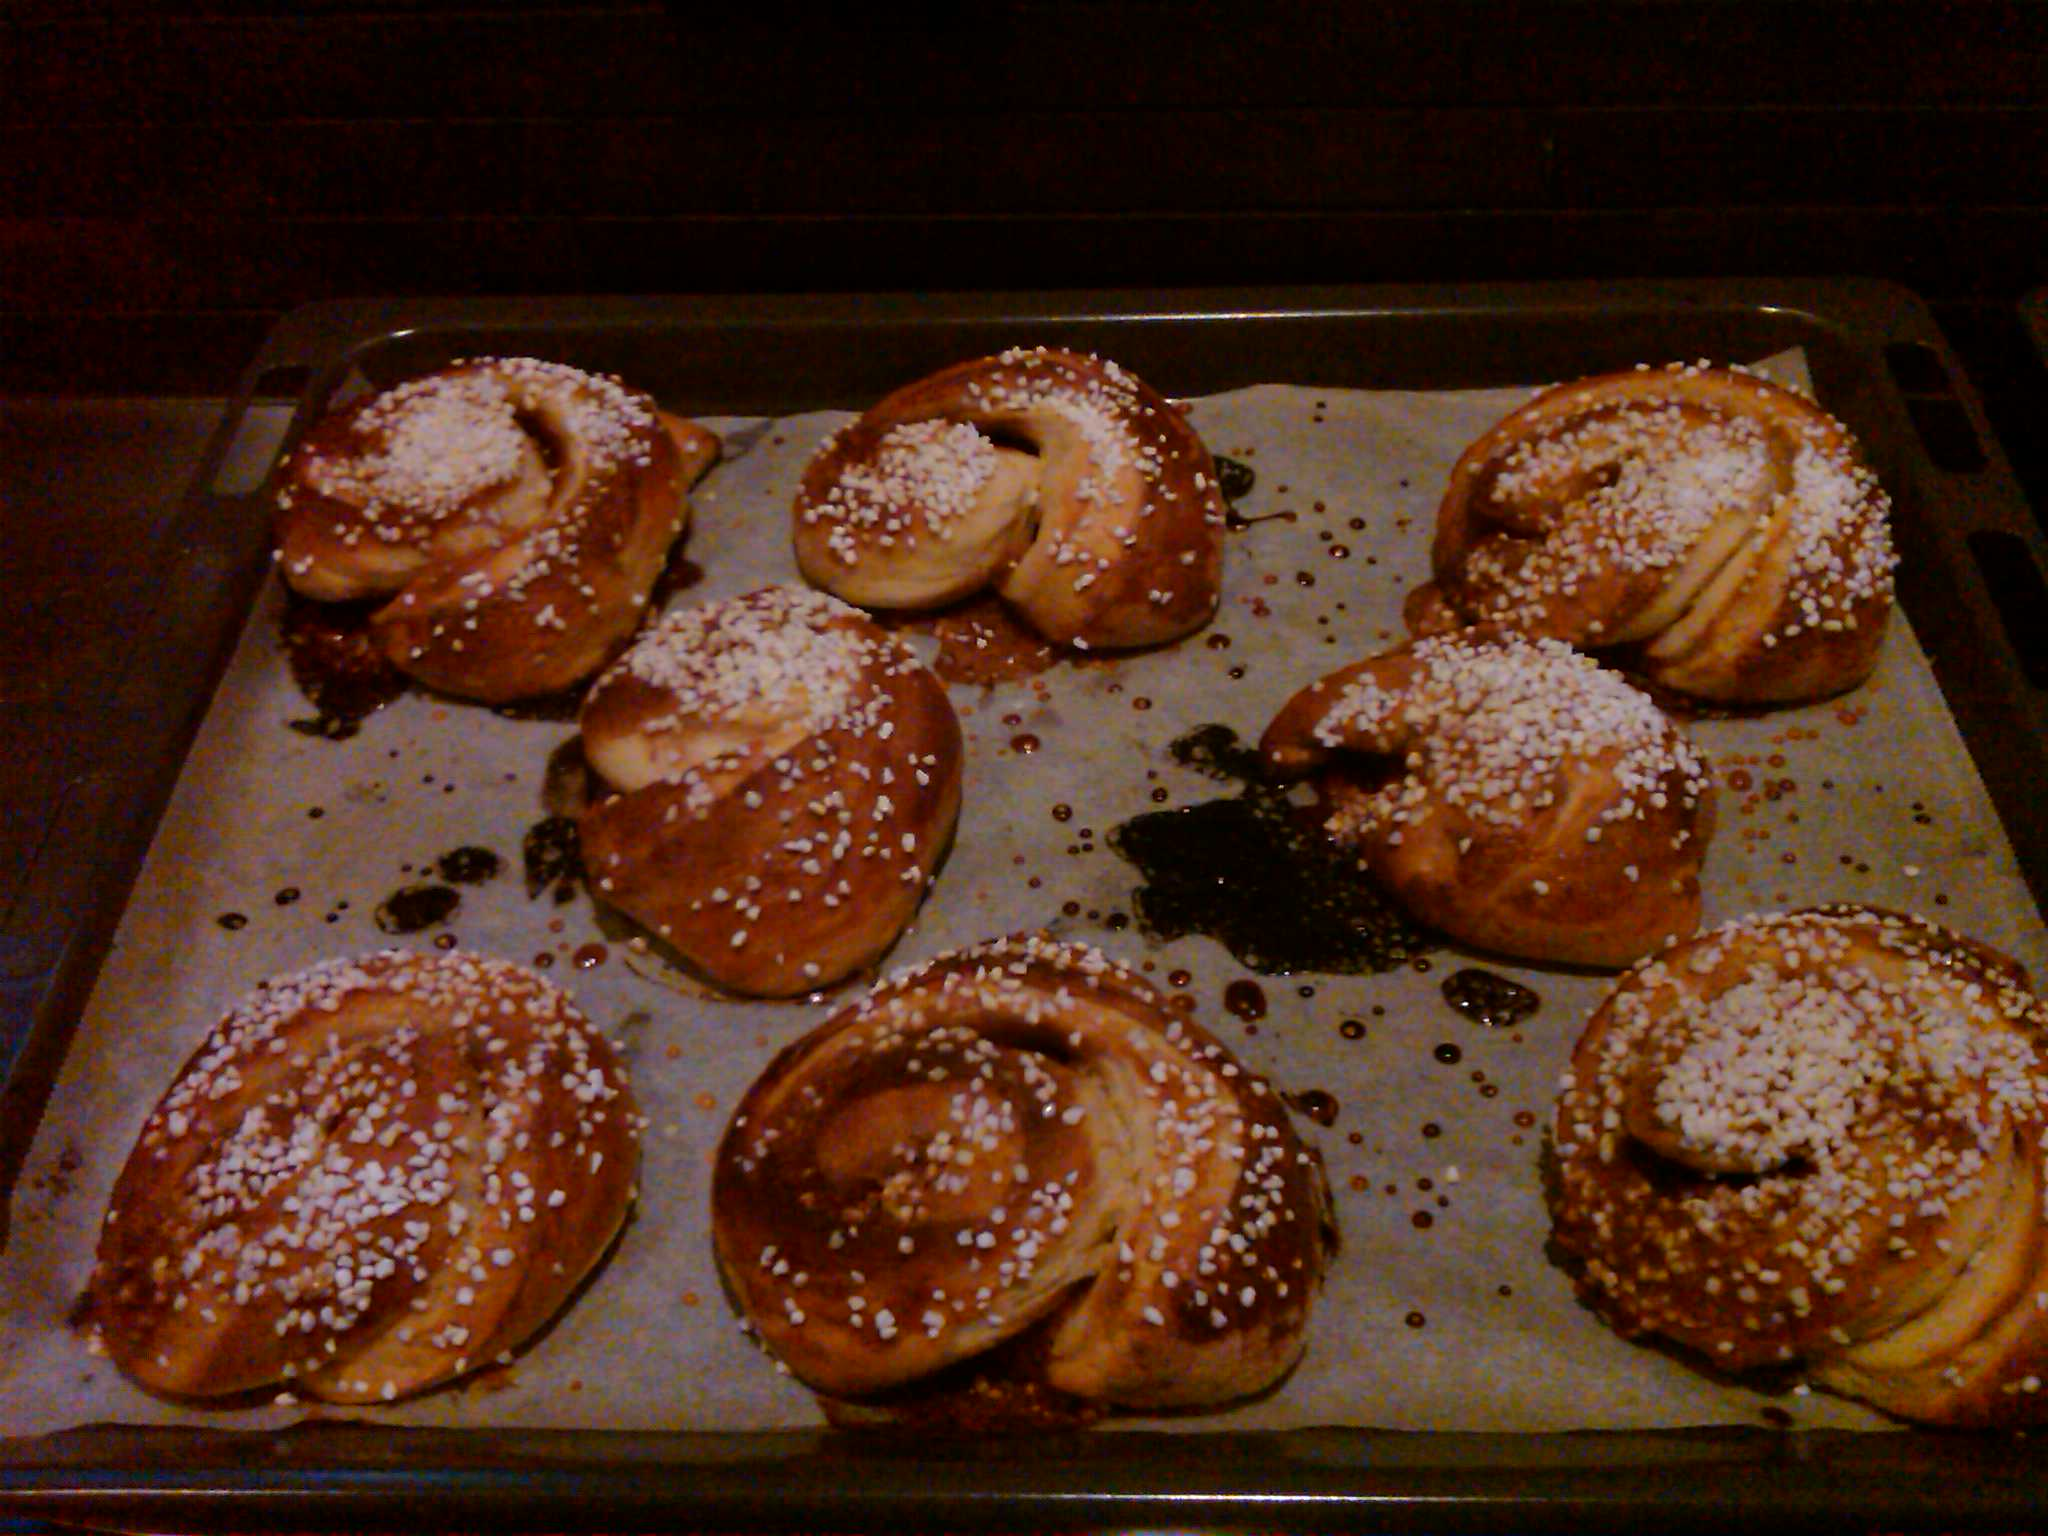 Swedish Cinnamon Buns (Kanelbulle)